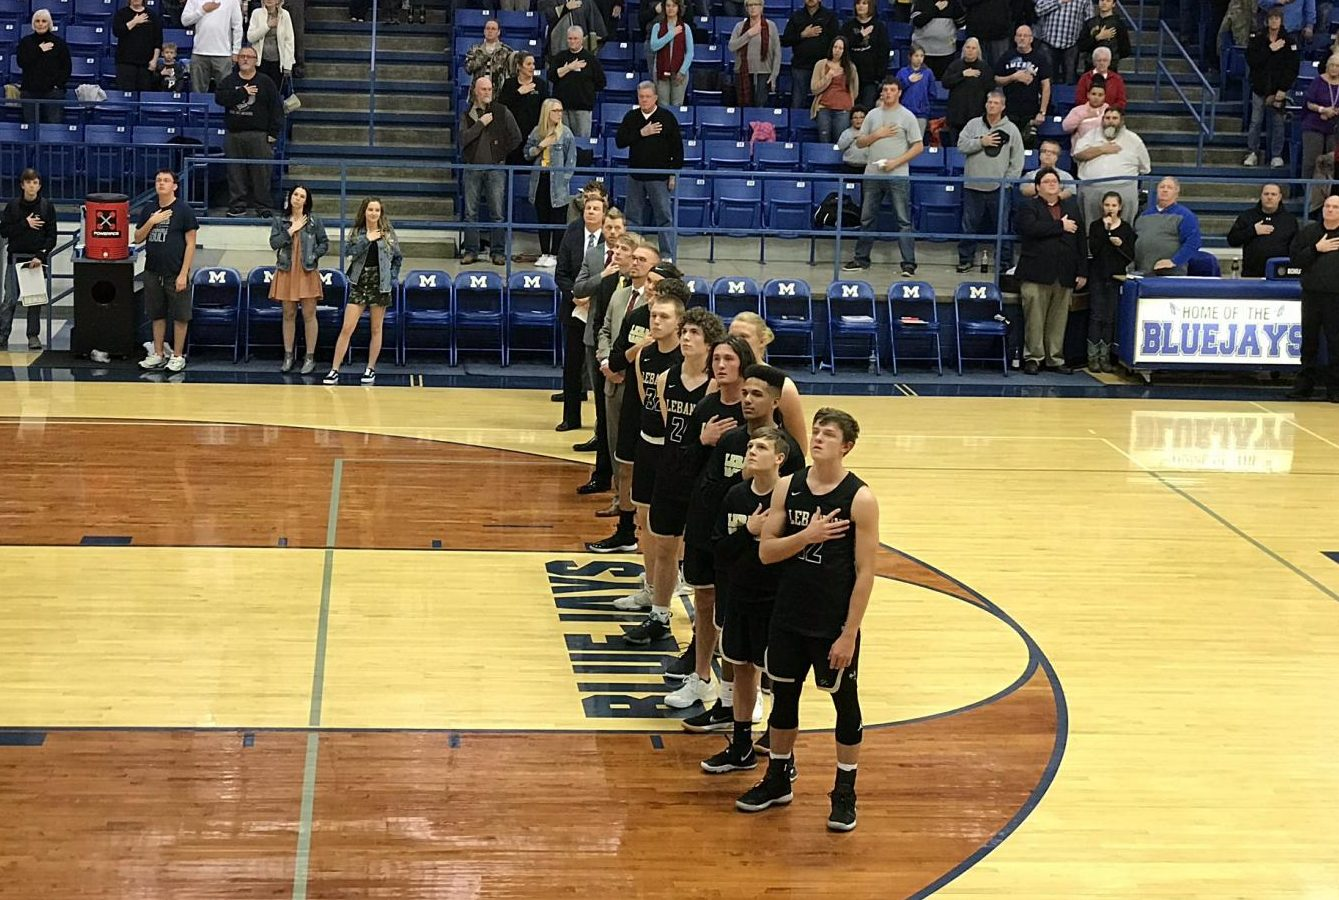 The varsity team stands for the national anthem before their game again Marshfield on December 4th.